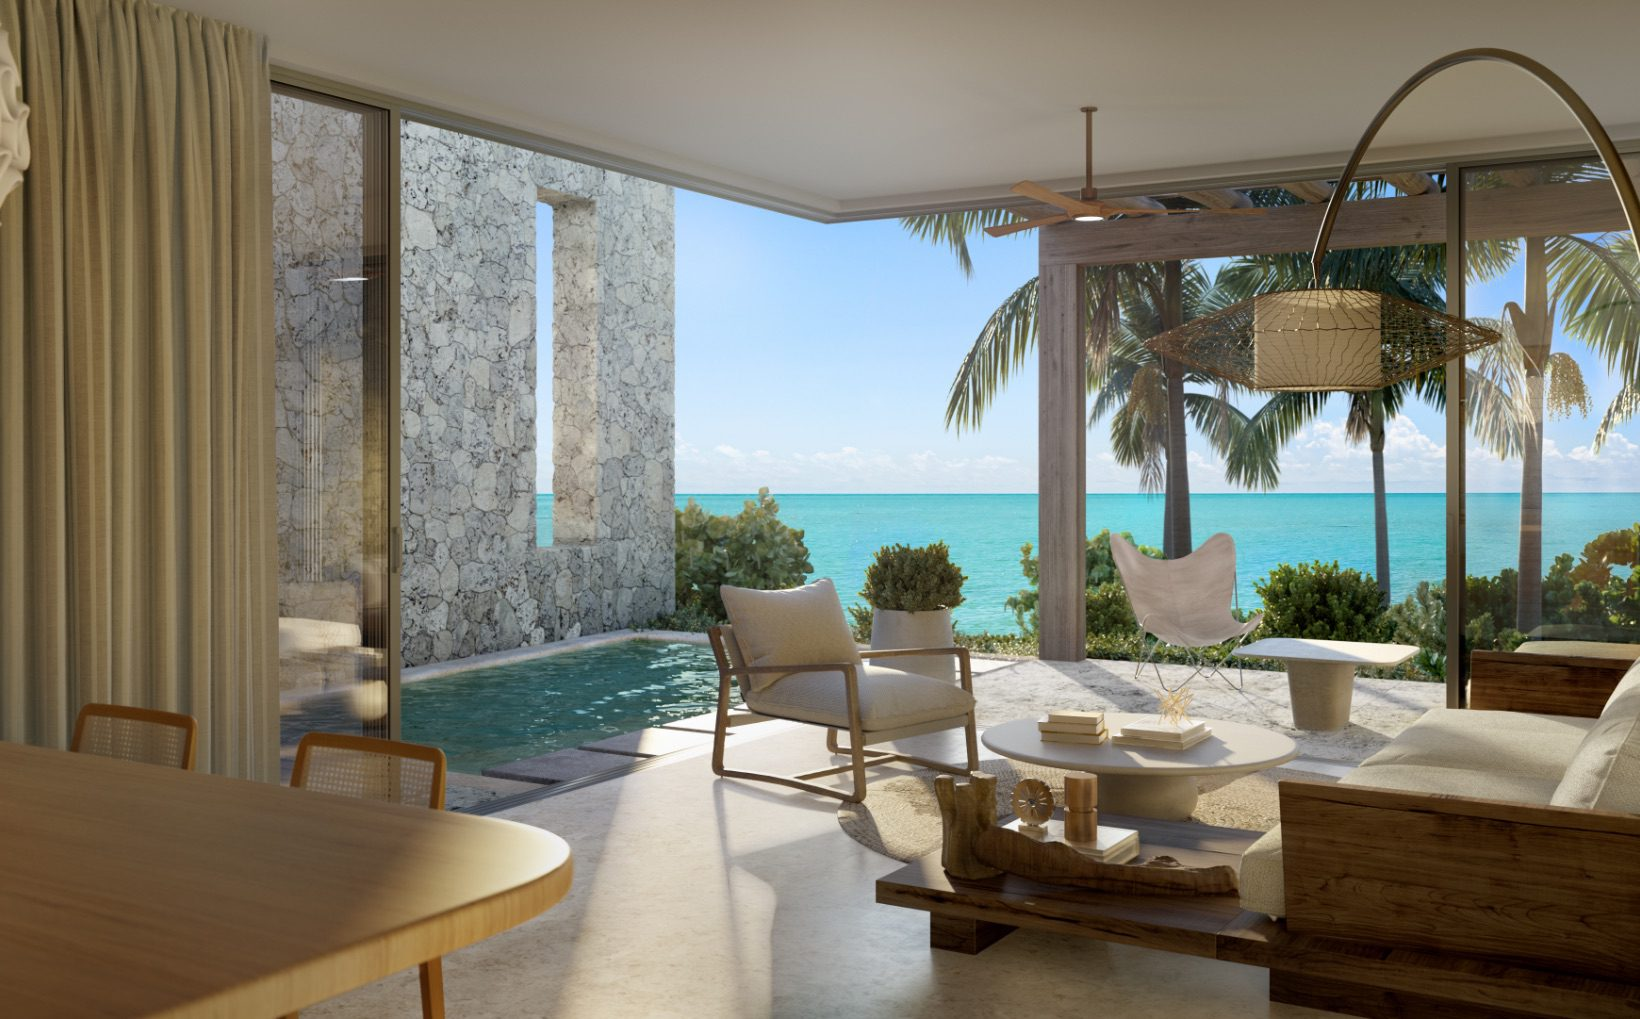 The Strand Turks and Caicos - The Villas